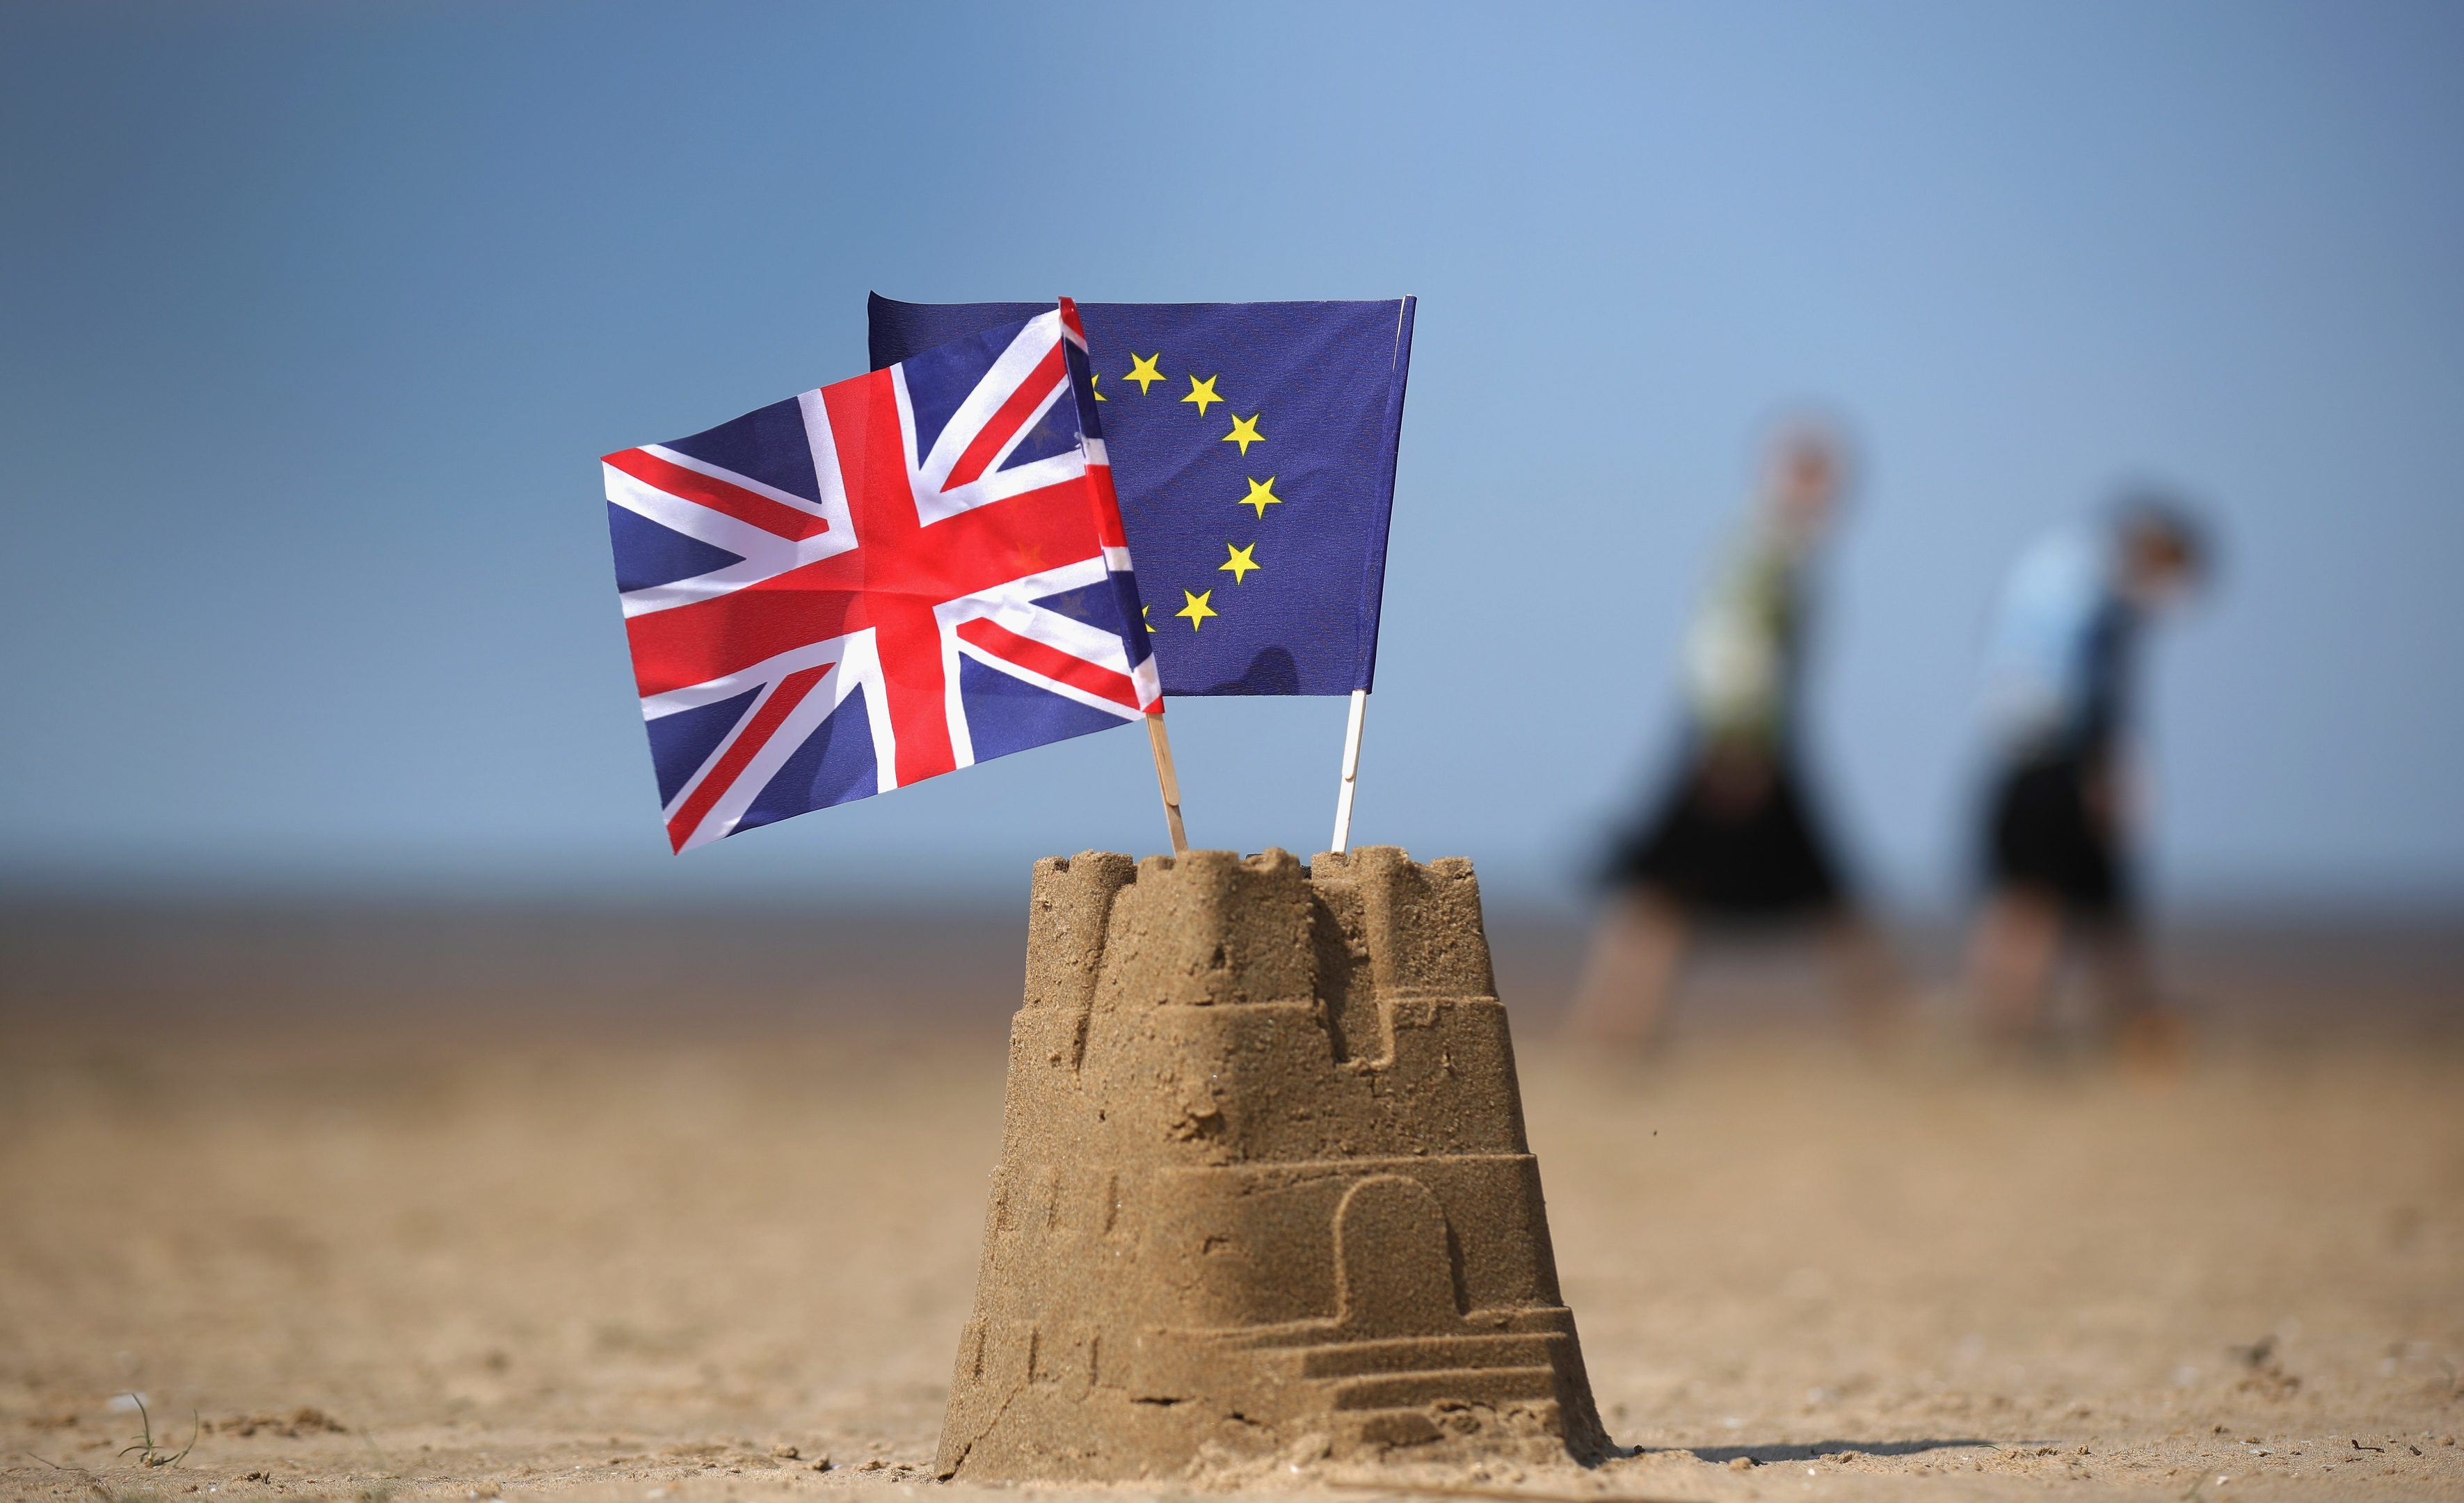 Should Britain stay in the European Union? British voters will have their chance to decide during the EU referendum on June 23